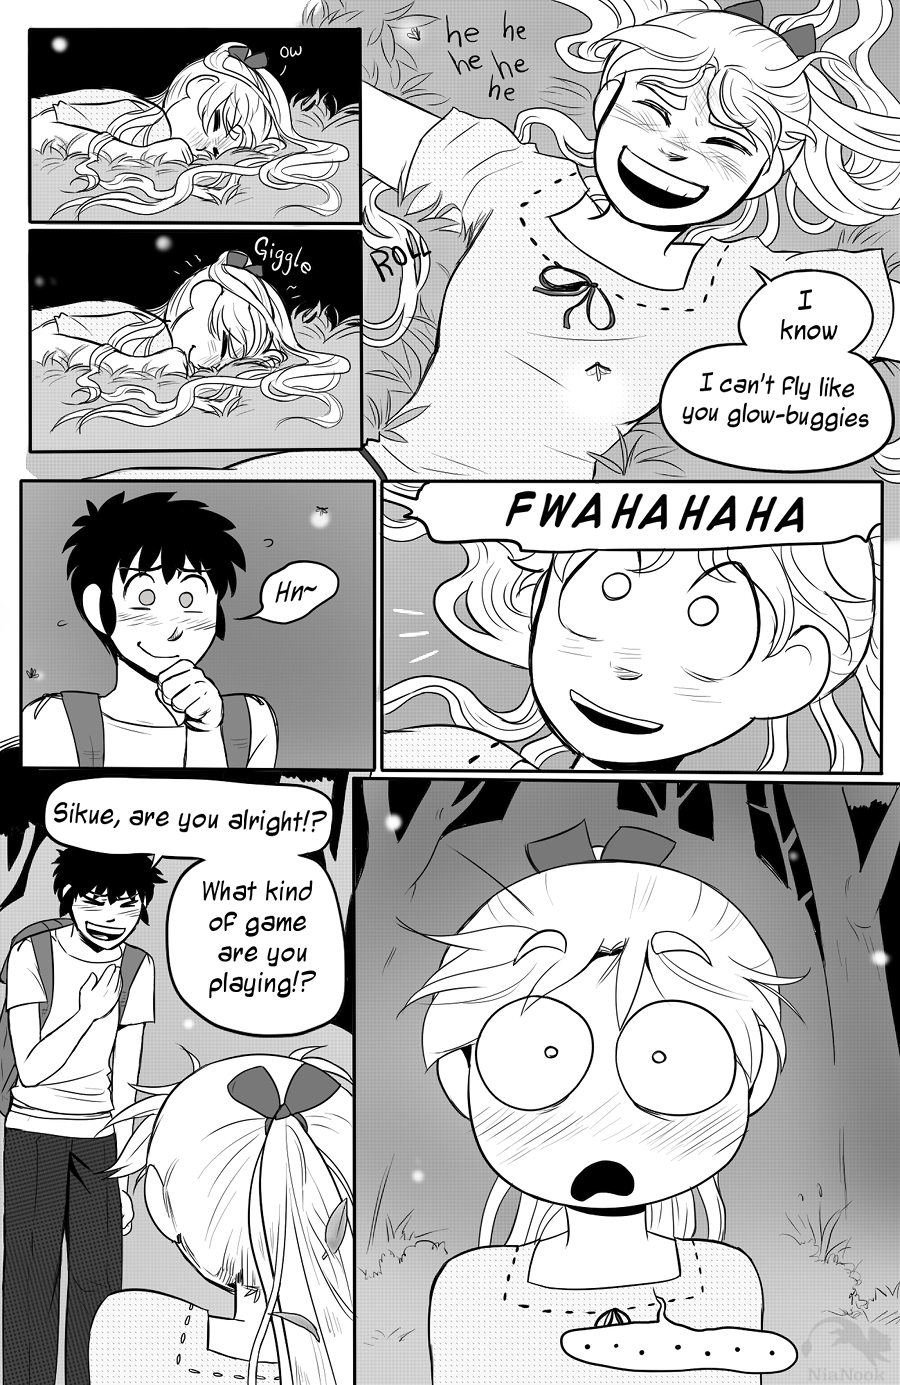 Page 13 (Book 4)